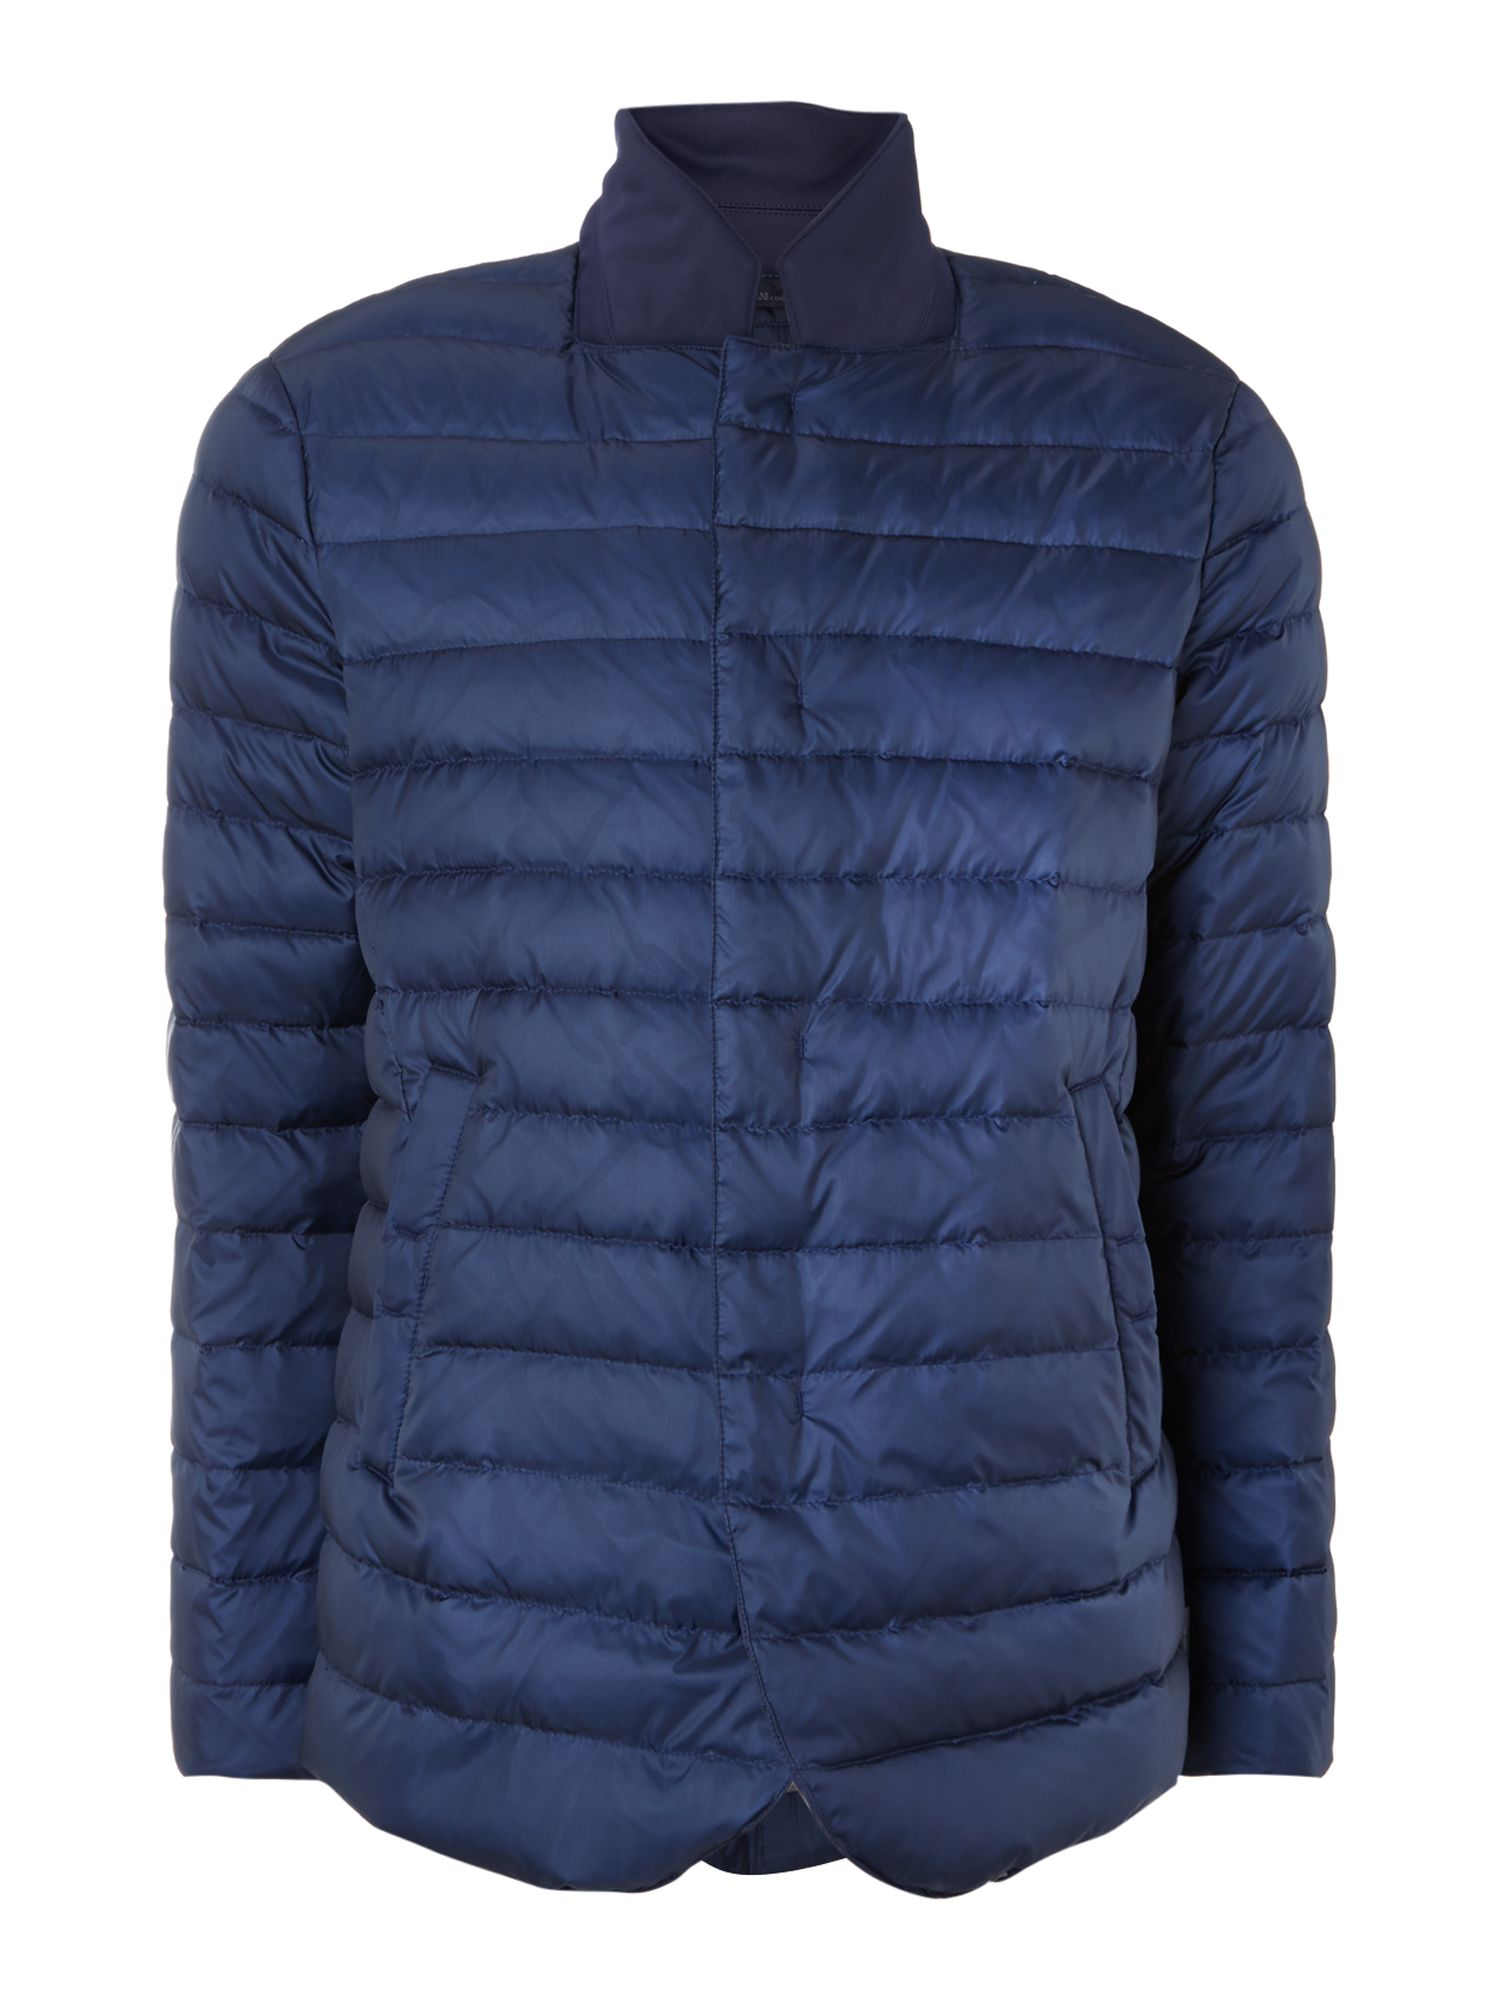 Nylon padded jacket